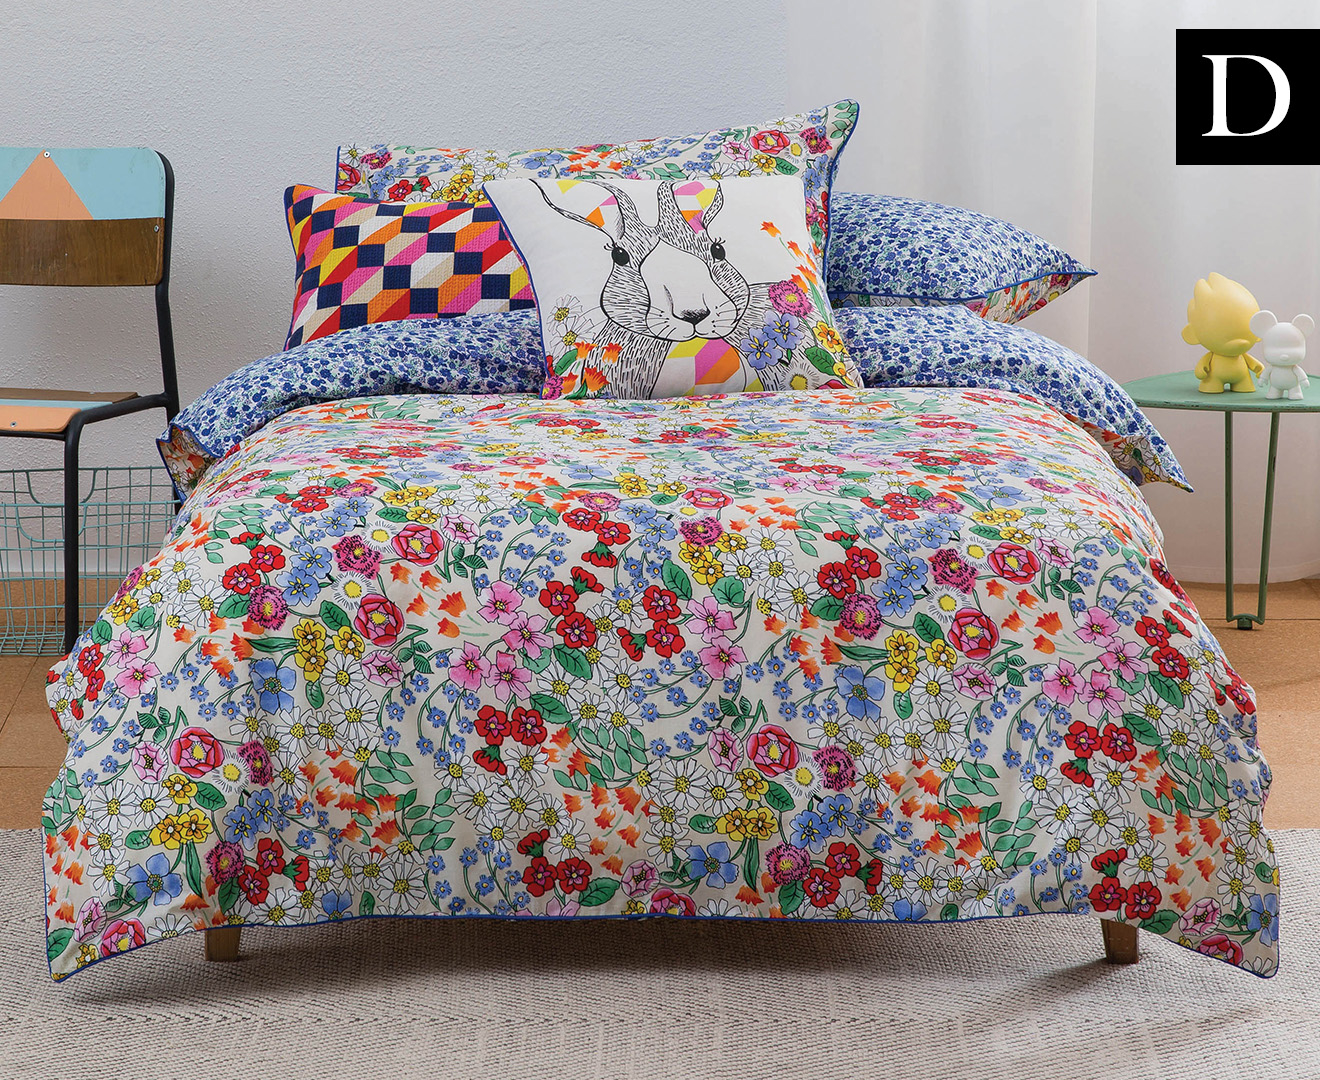 KAS Kids Daisy Double Bed Quilt Cover Set - Multi